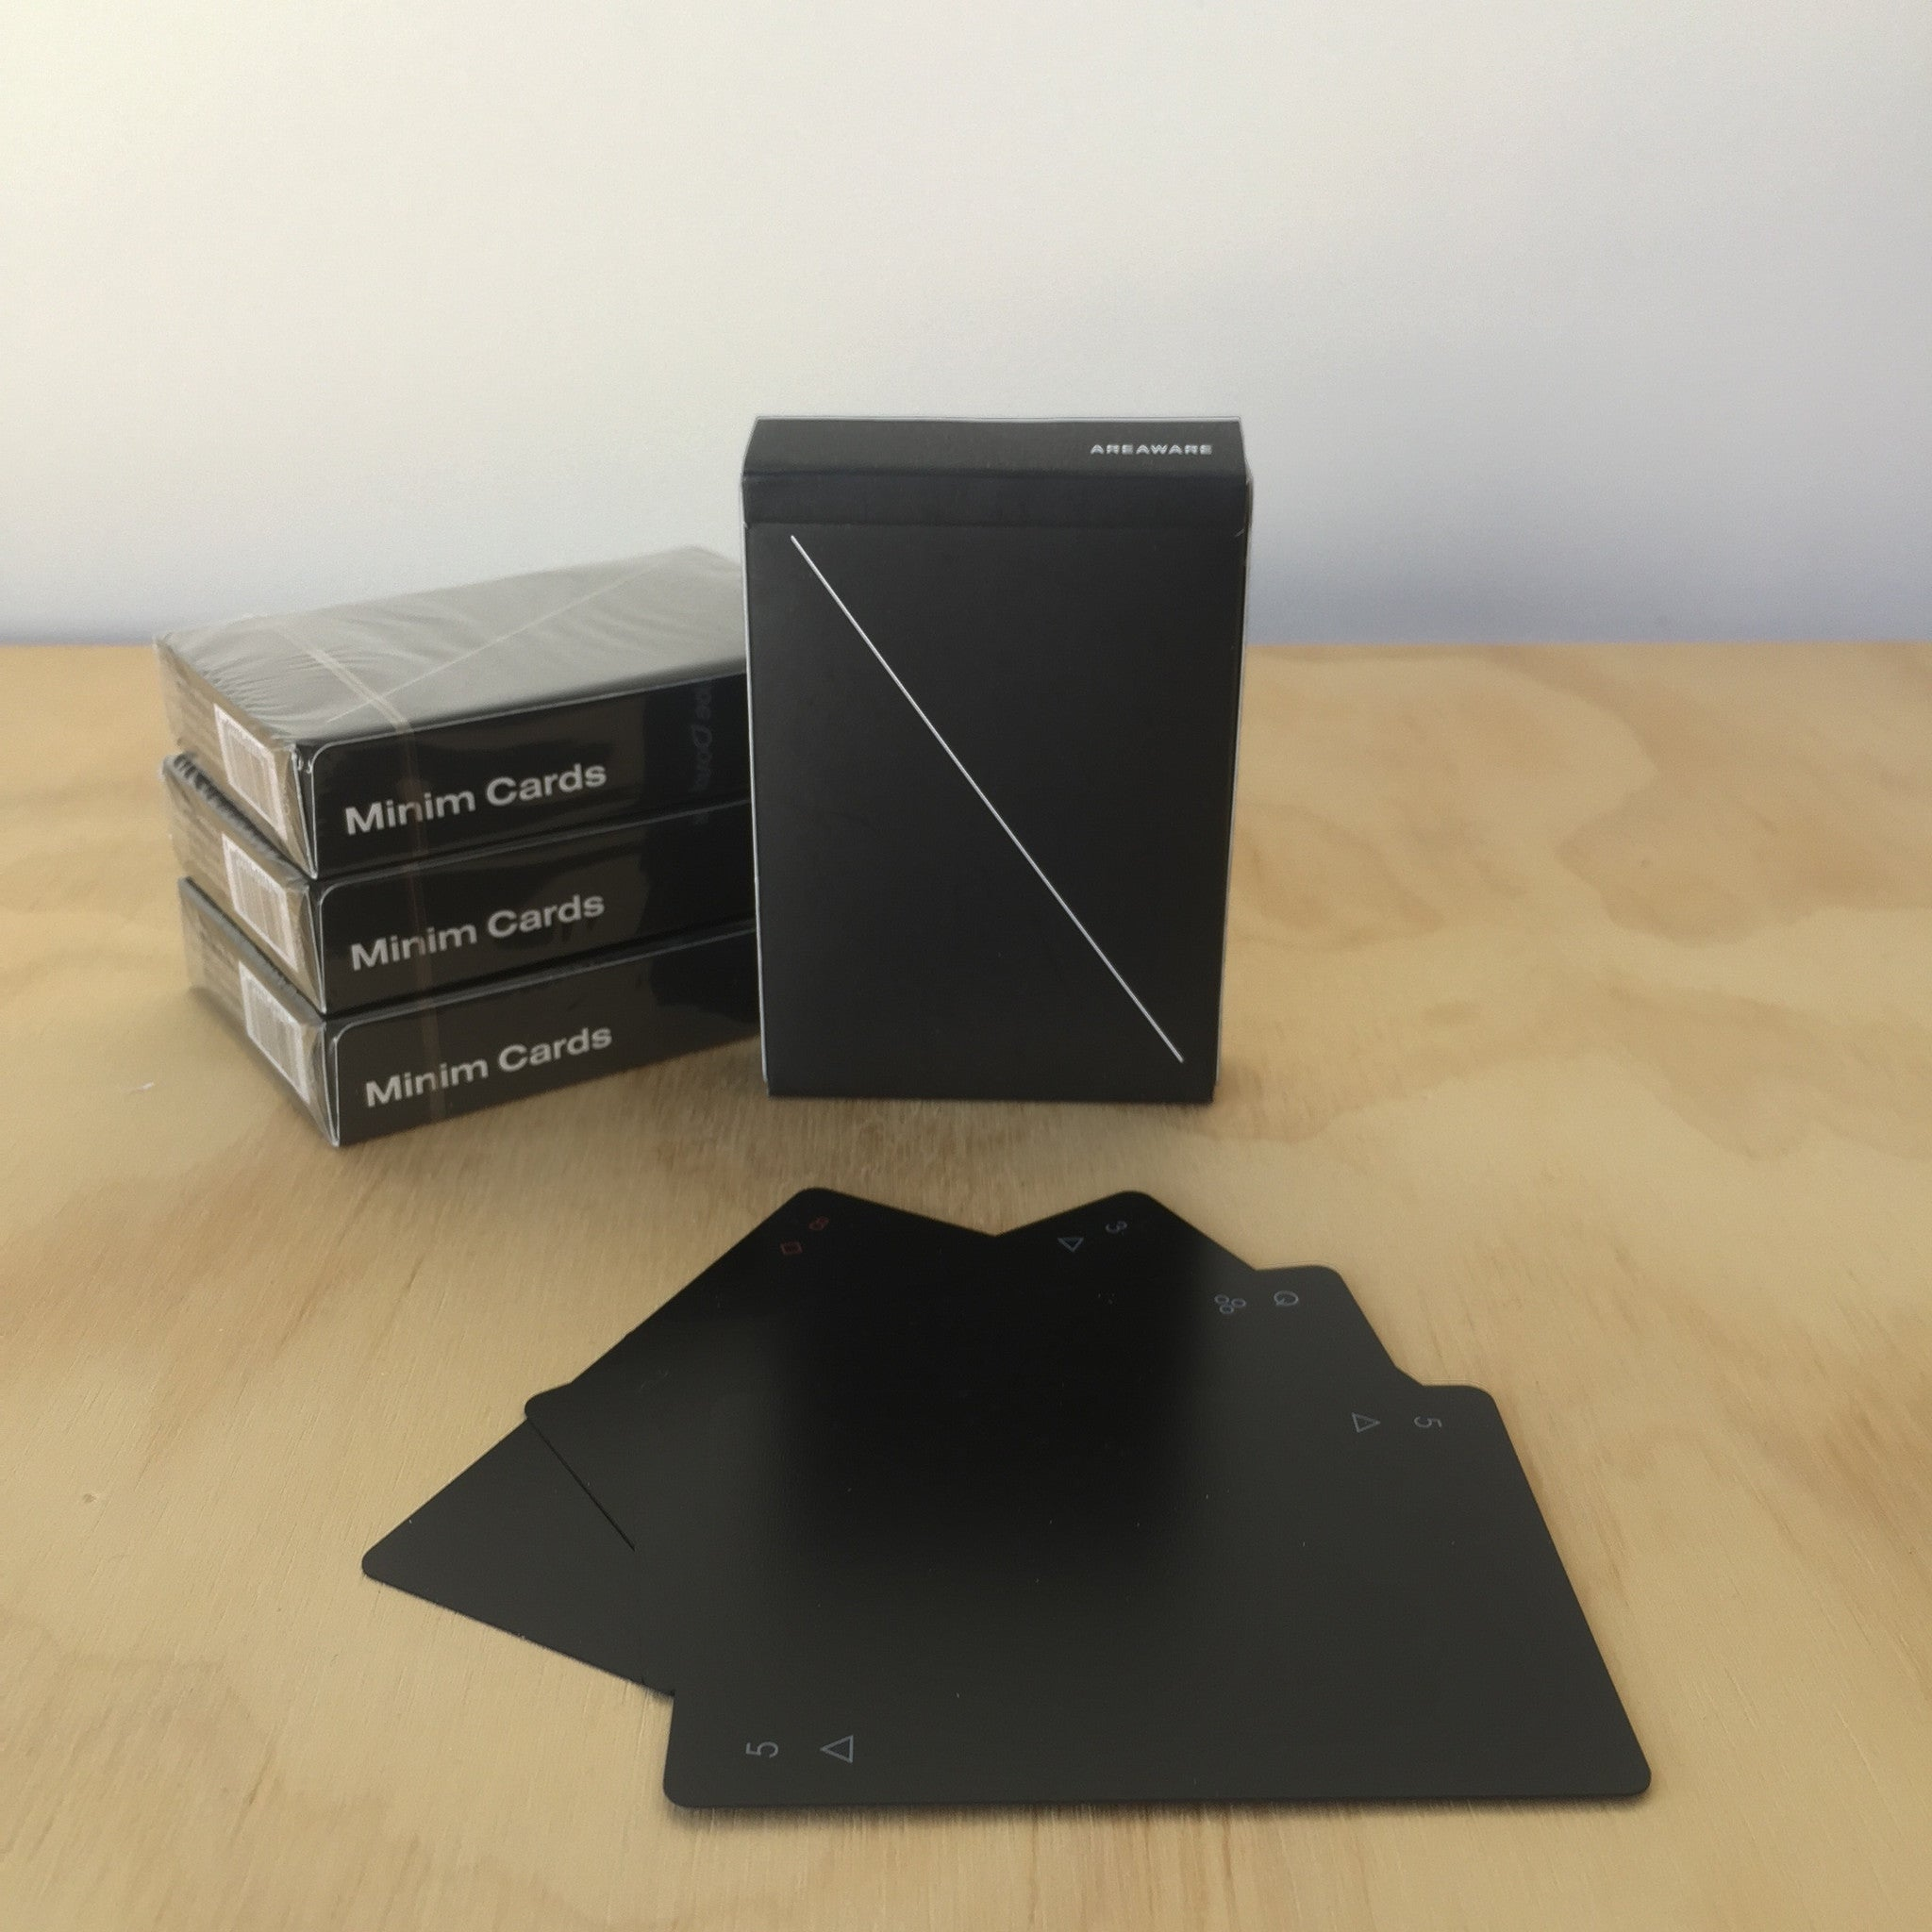 Black Minim Playing Cards by Joe Doucet for Areaware - Upstate MN